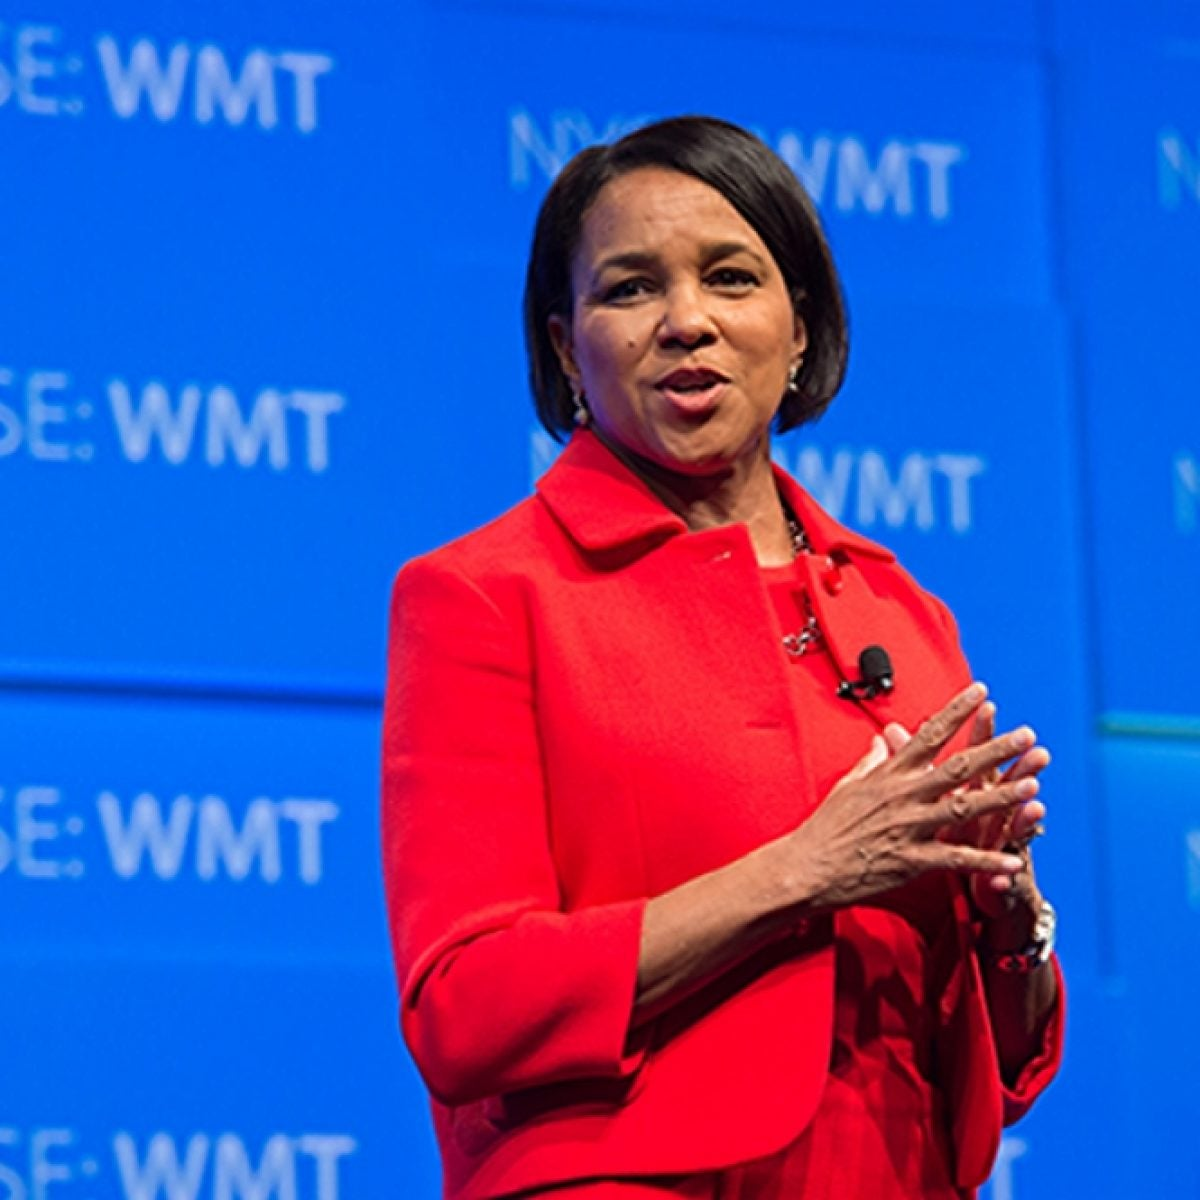 Rosalind Brewer's Move To Walgreens Makes Her The Only Black Woman To Lead A Fortune 500 Company